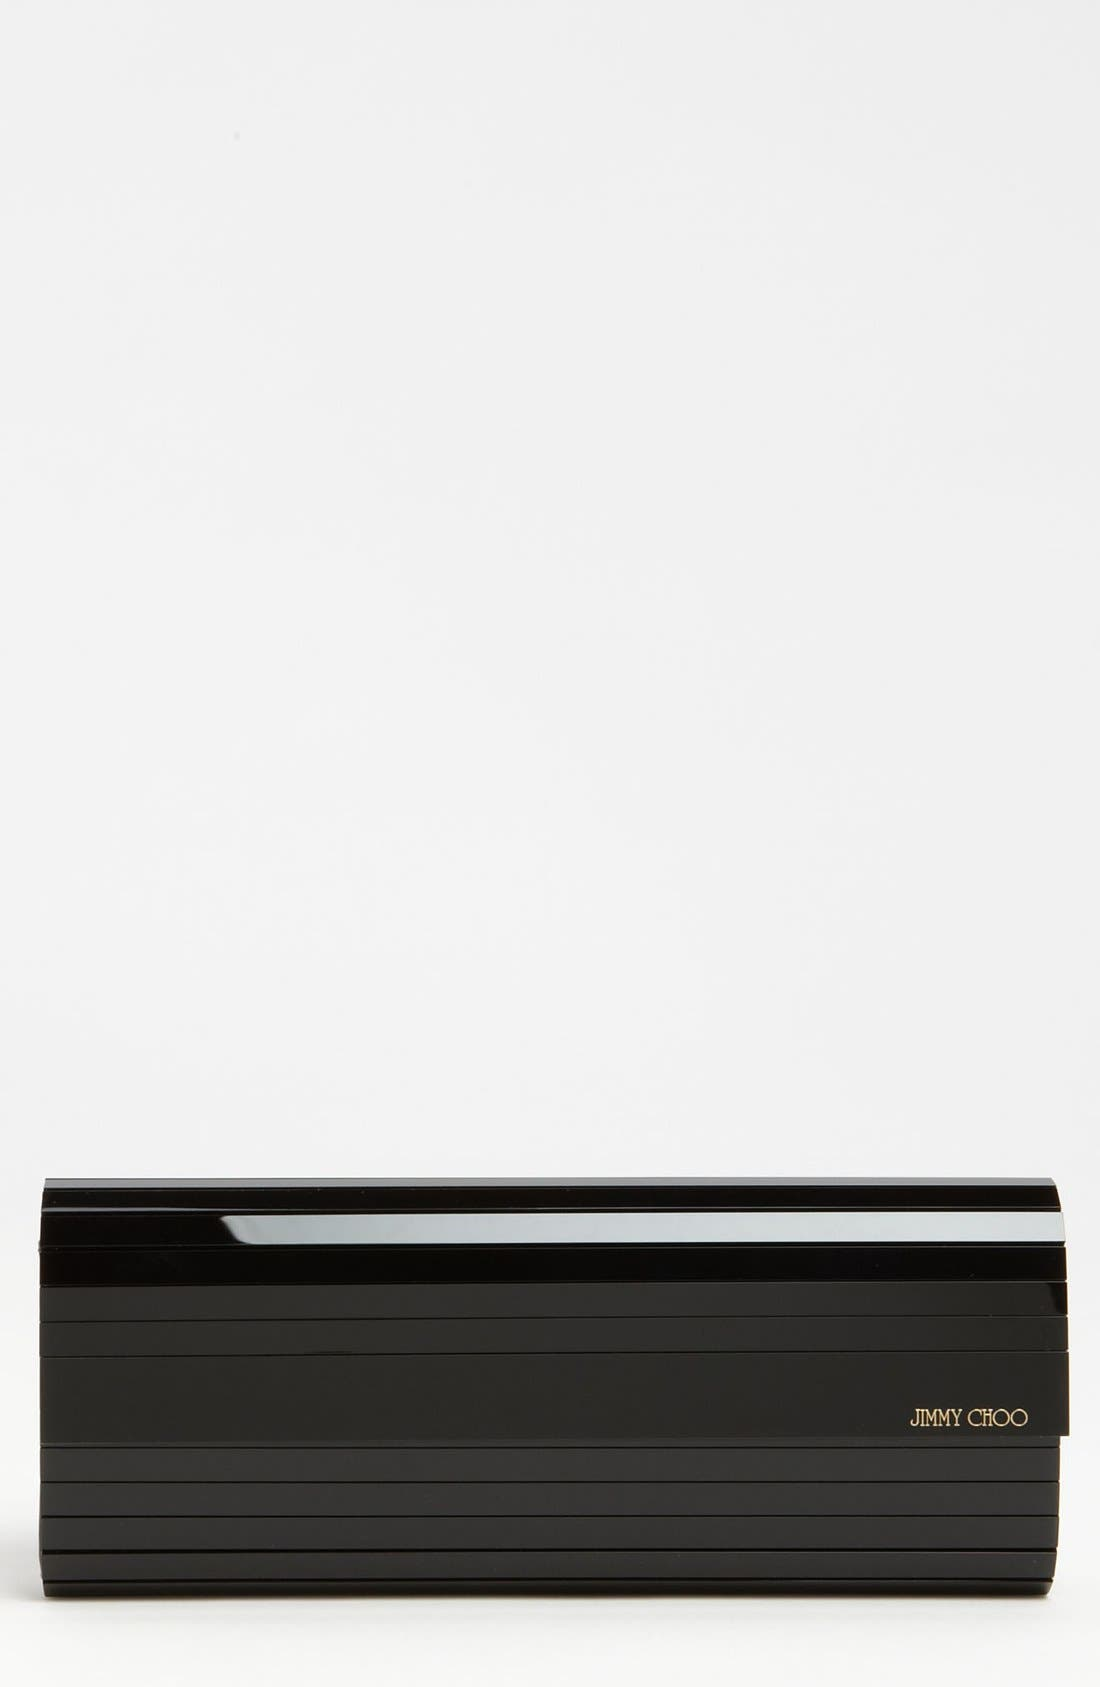 Alternate Image 1 Selected - Jimmy Choo 'Sweetie' Acrylic Clutch